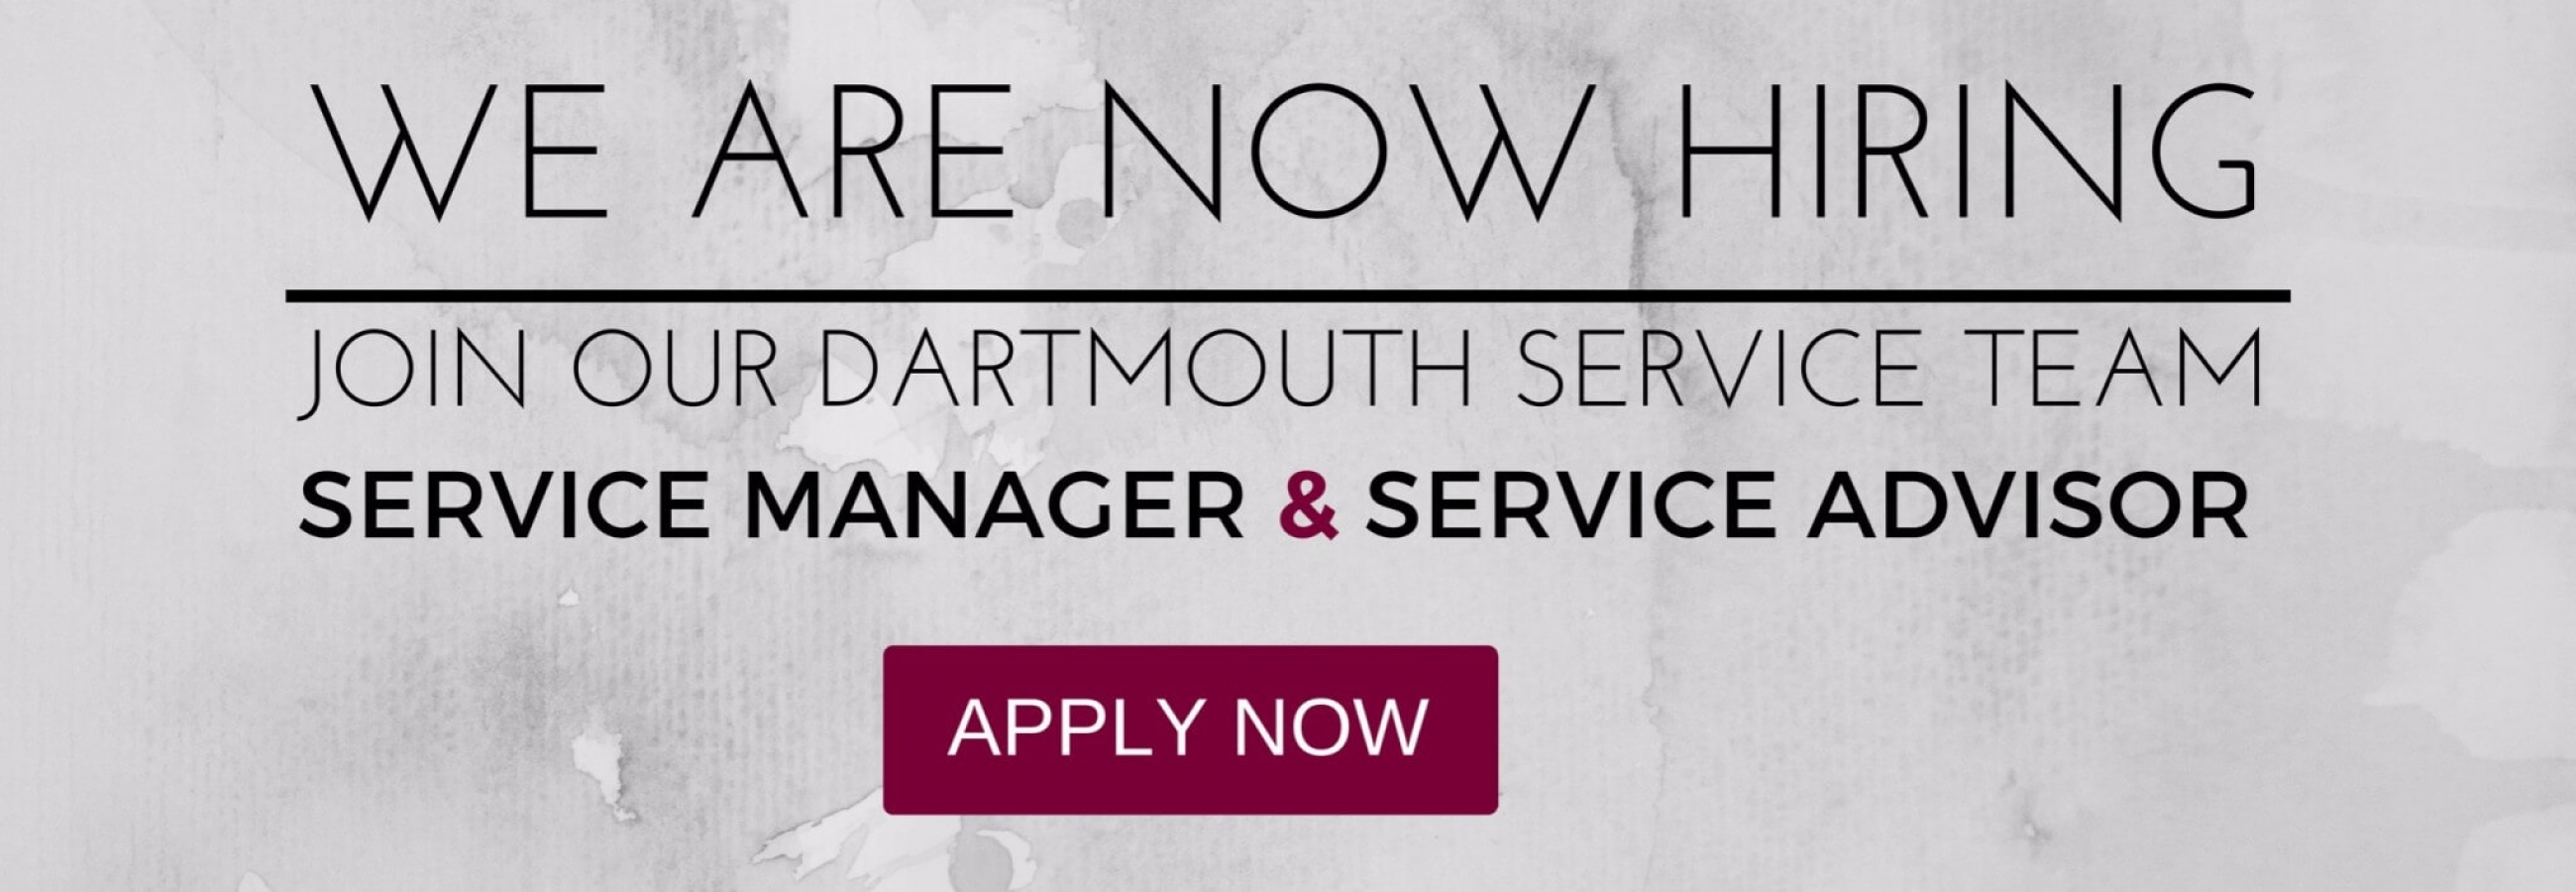 We're now hiring for Dartmouth Service Manager & Dartmouth Service Advisor